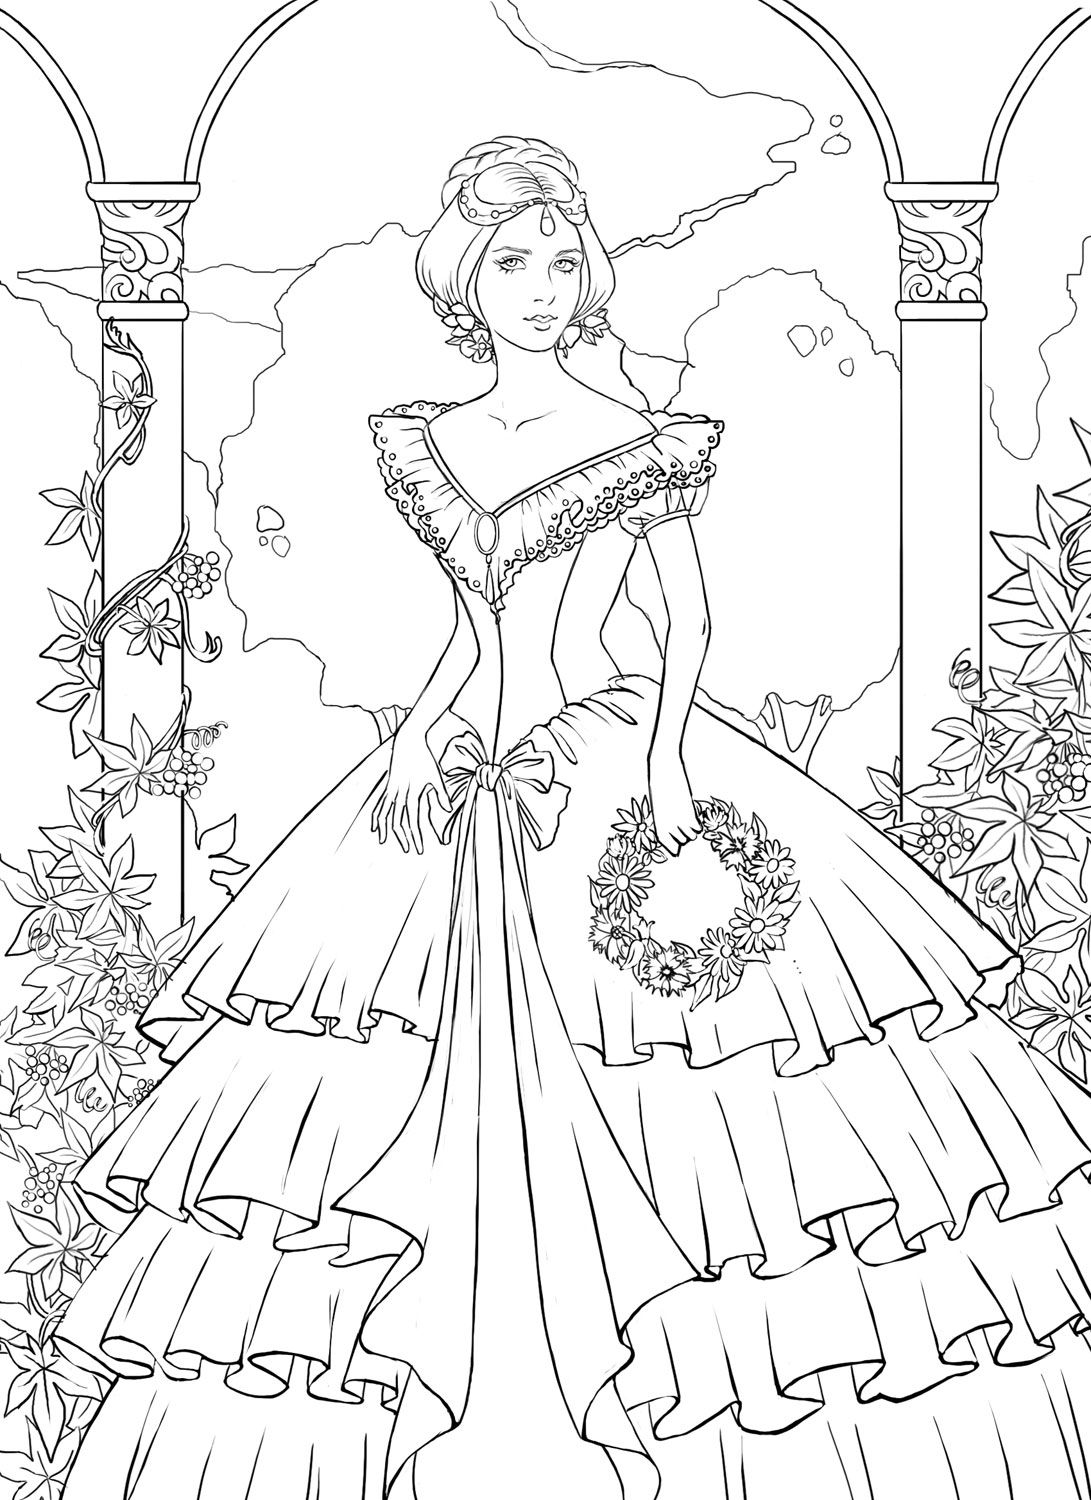 Fresh Coloring Pages People Free | People coloring pages, Tattoo ... | 1500x1091